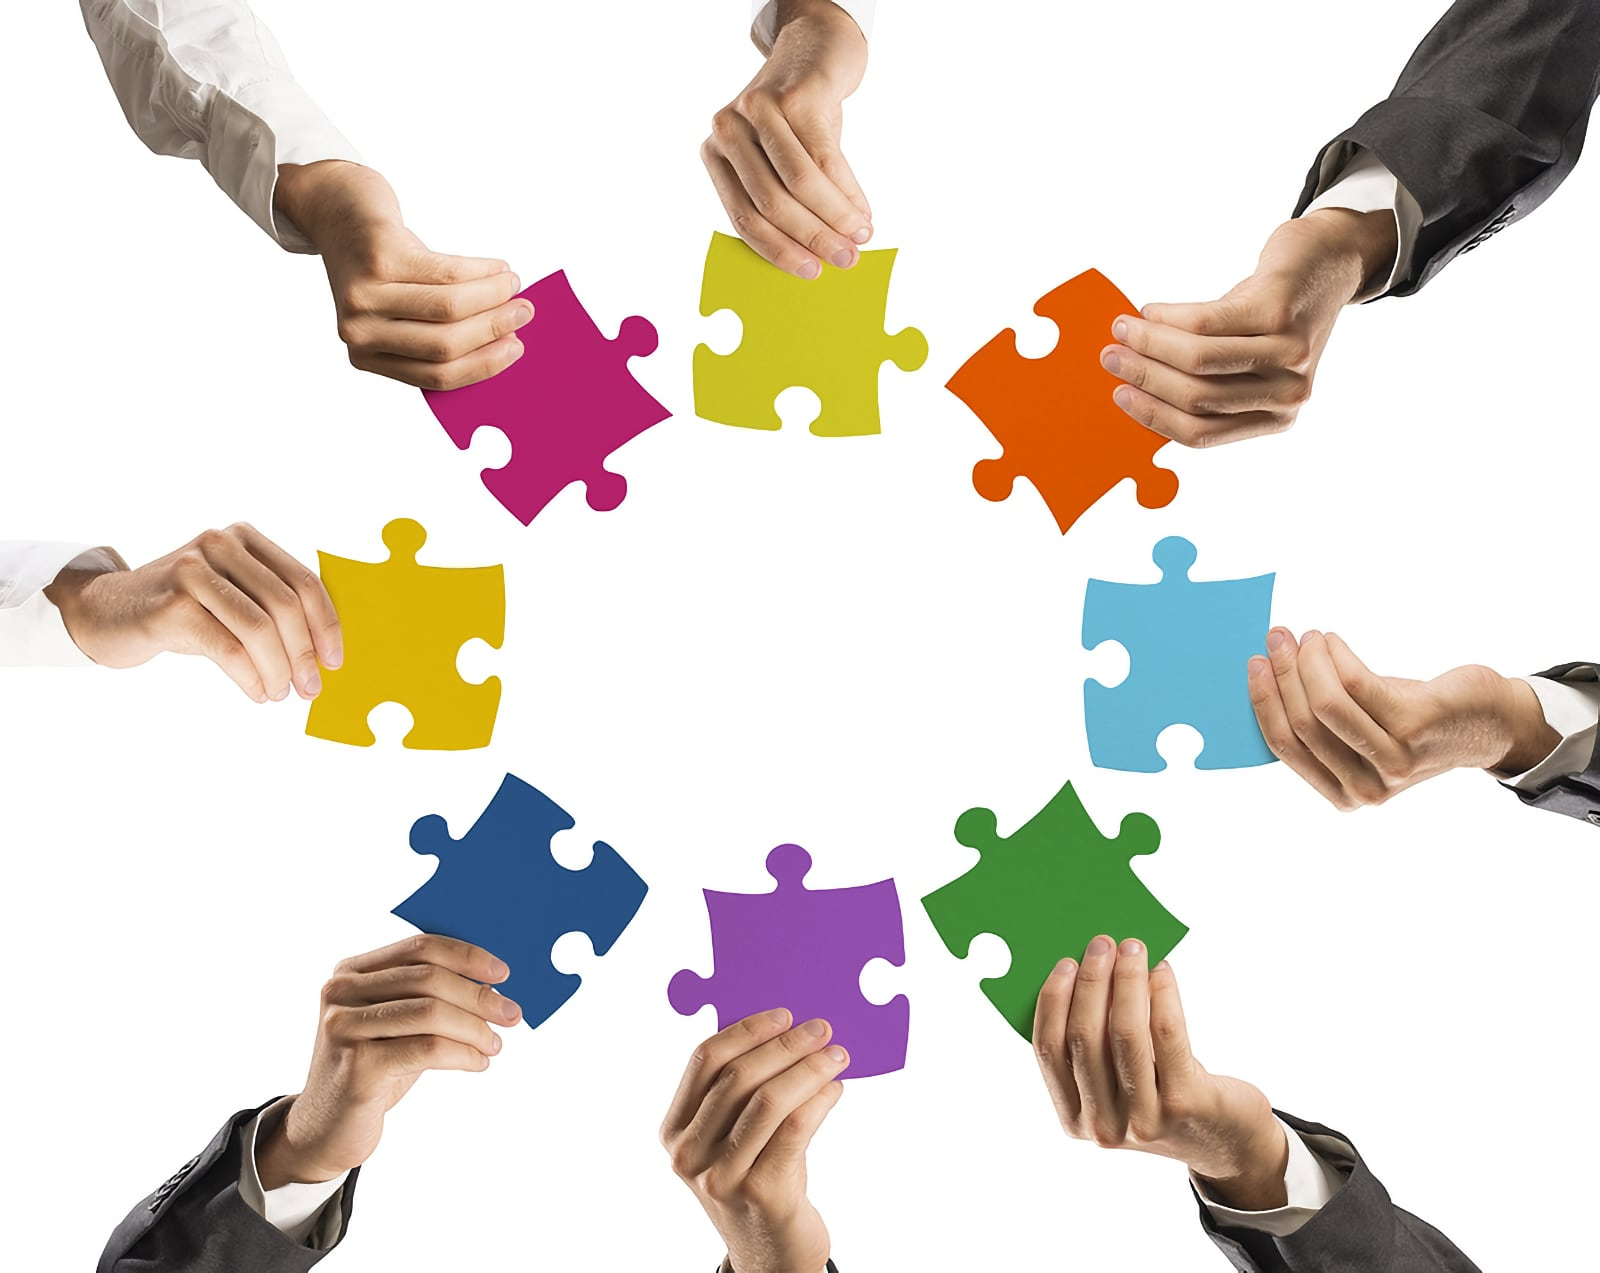 Concept image showing seven indvidual hands each holding a piece of a coloured jigsaw puzzle. Each and presents their jigsaw puzzle piece to the centre of the group to all form a circle of contribution